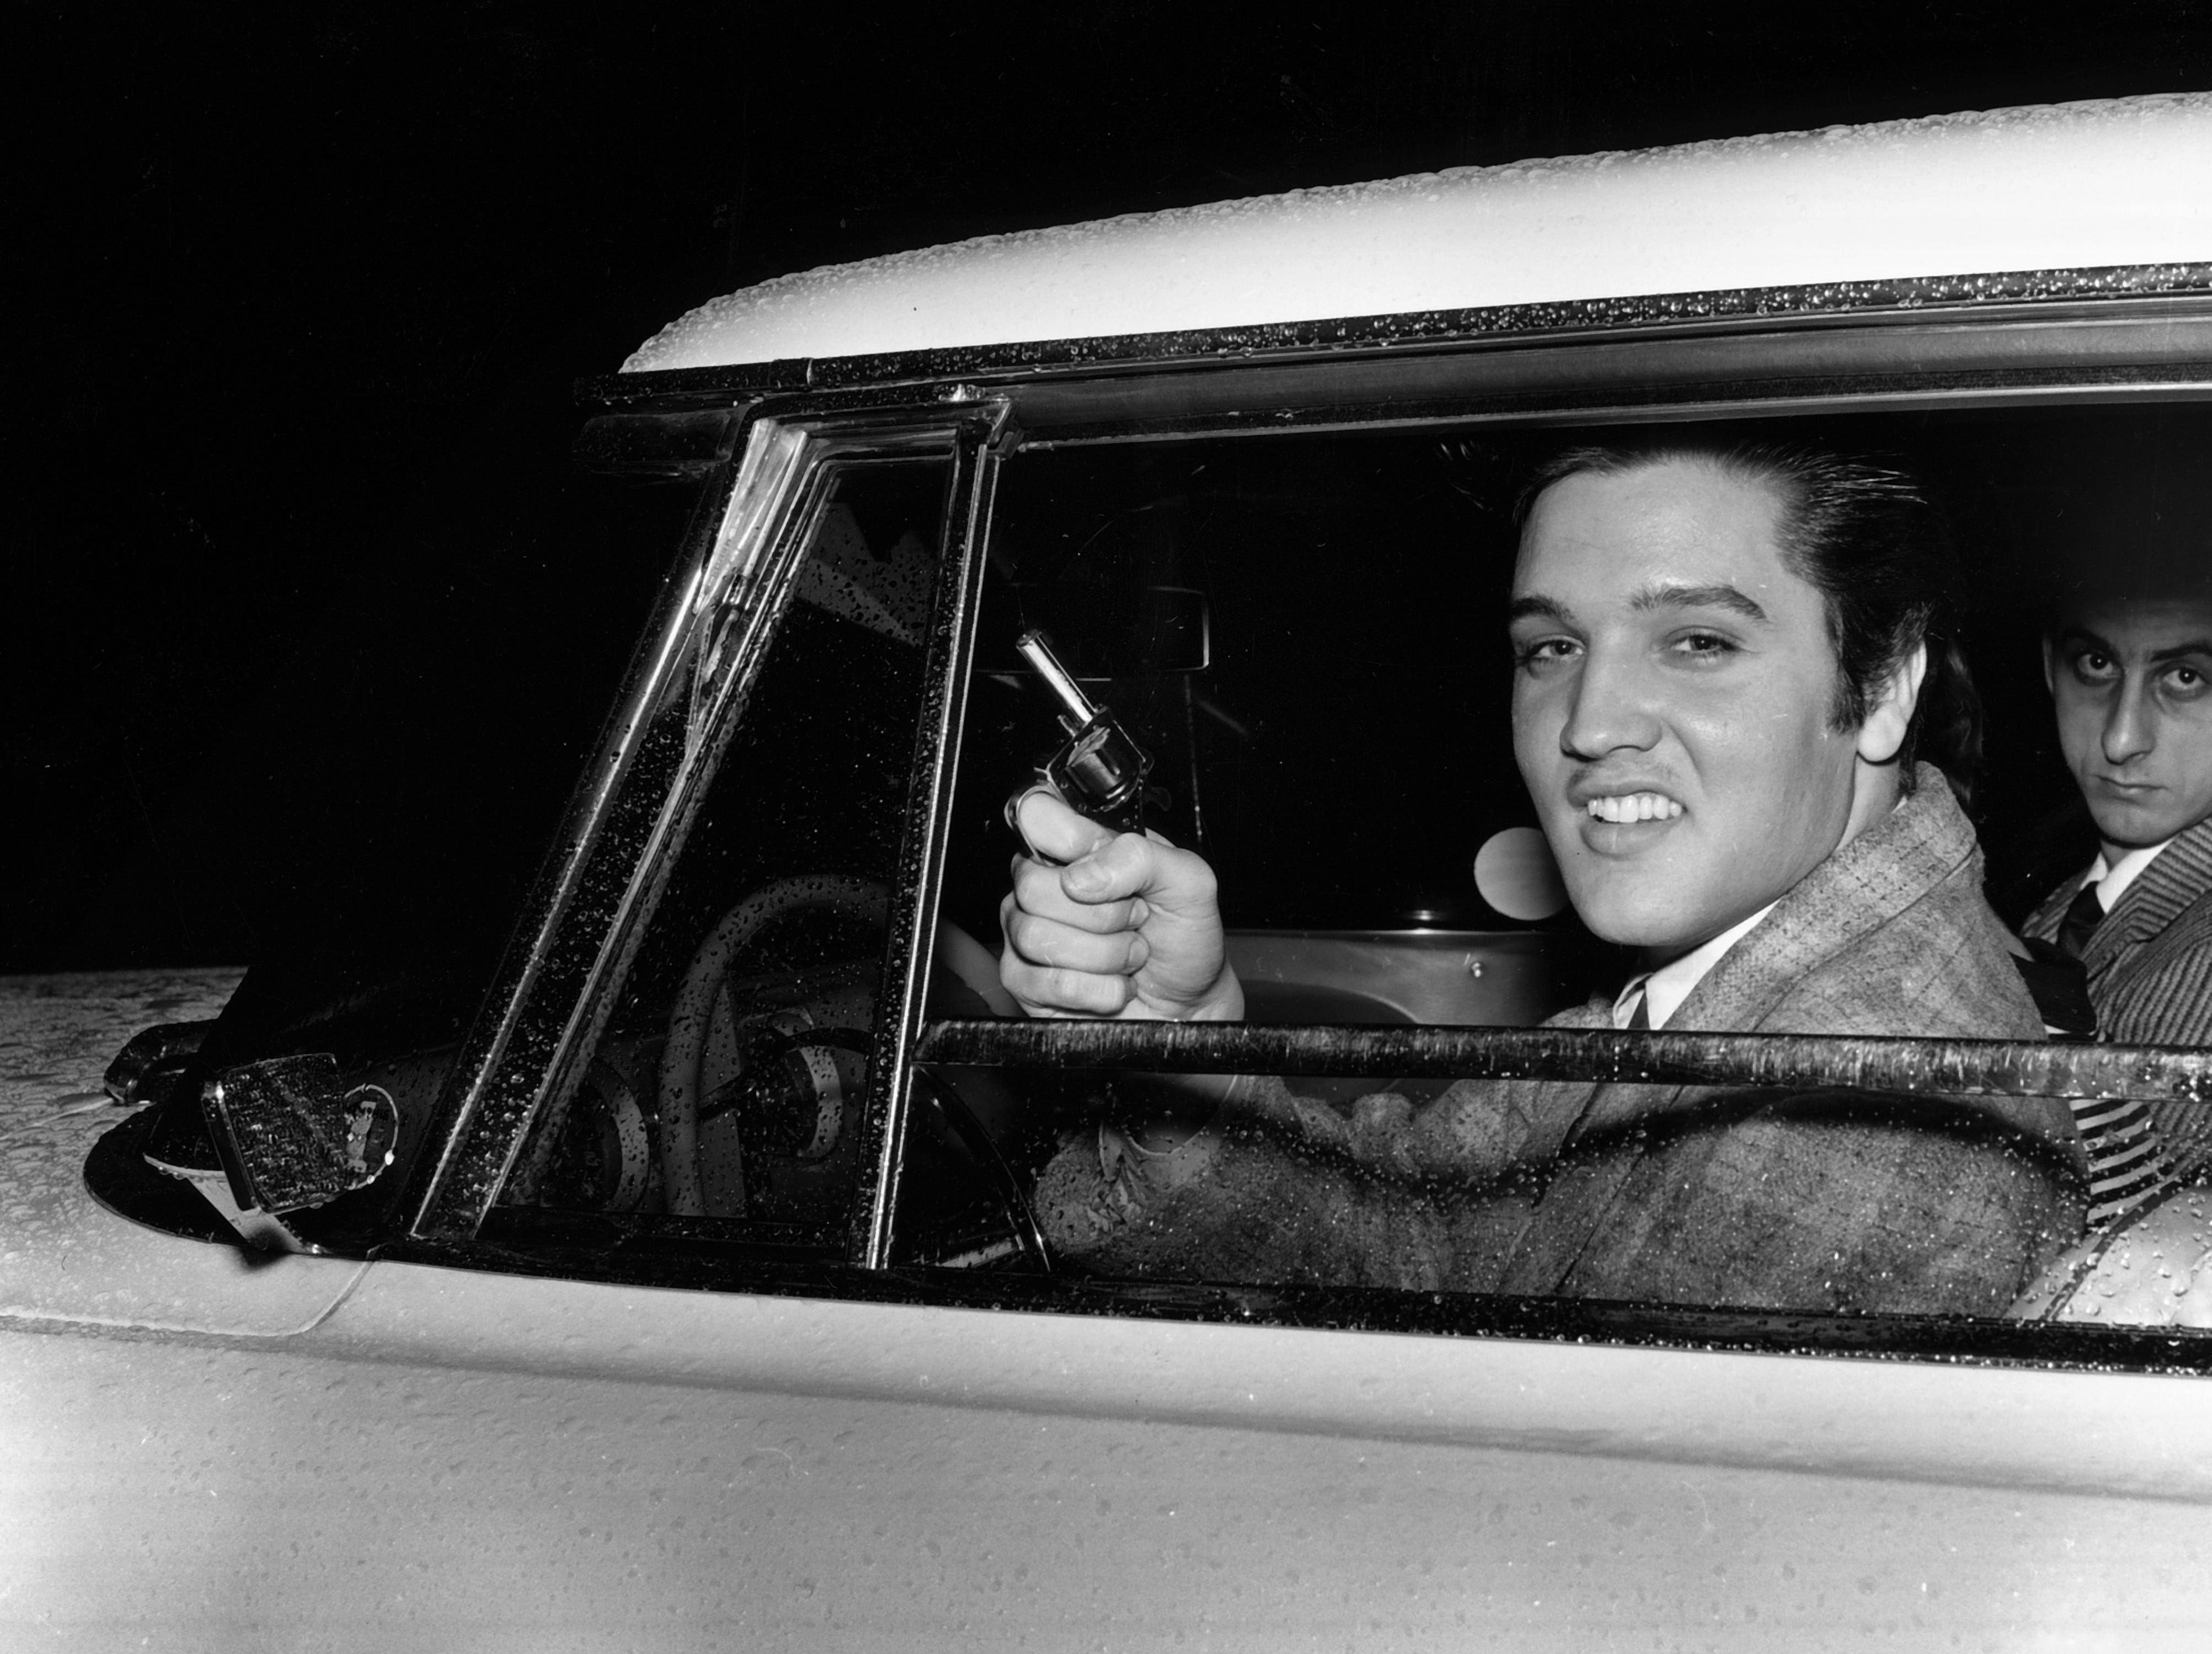 """Elvis Presley displays a toy pistol, used as a prop in a movie, that caused trouble on the night of March 22, 1957 when a Marine from Millington tried to """"pick a fight with me."""" The singer pulled the gun out of his coat to scare the Marine away. By the following Tuesday, Elvis and the Marine, Pfc. Hershel Nixon, had patched up the quarrel. """"It was all a misunderstanding,"""" said Presley. """"We're both sorry it happened."""" Elvis' friend George Klein is in the passenger seat."""